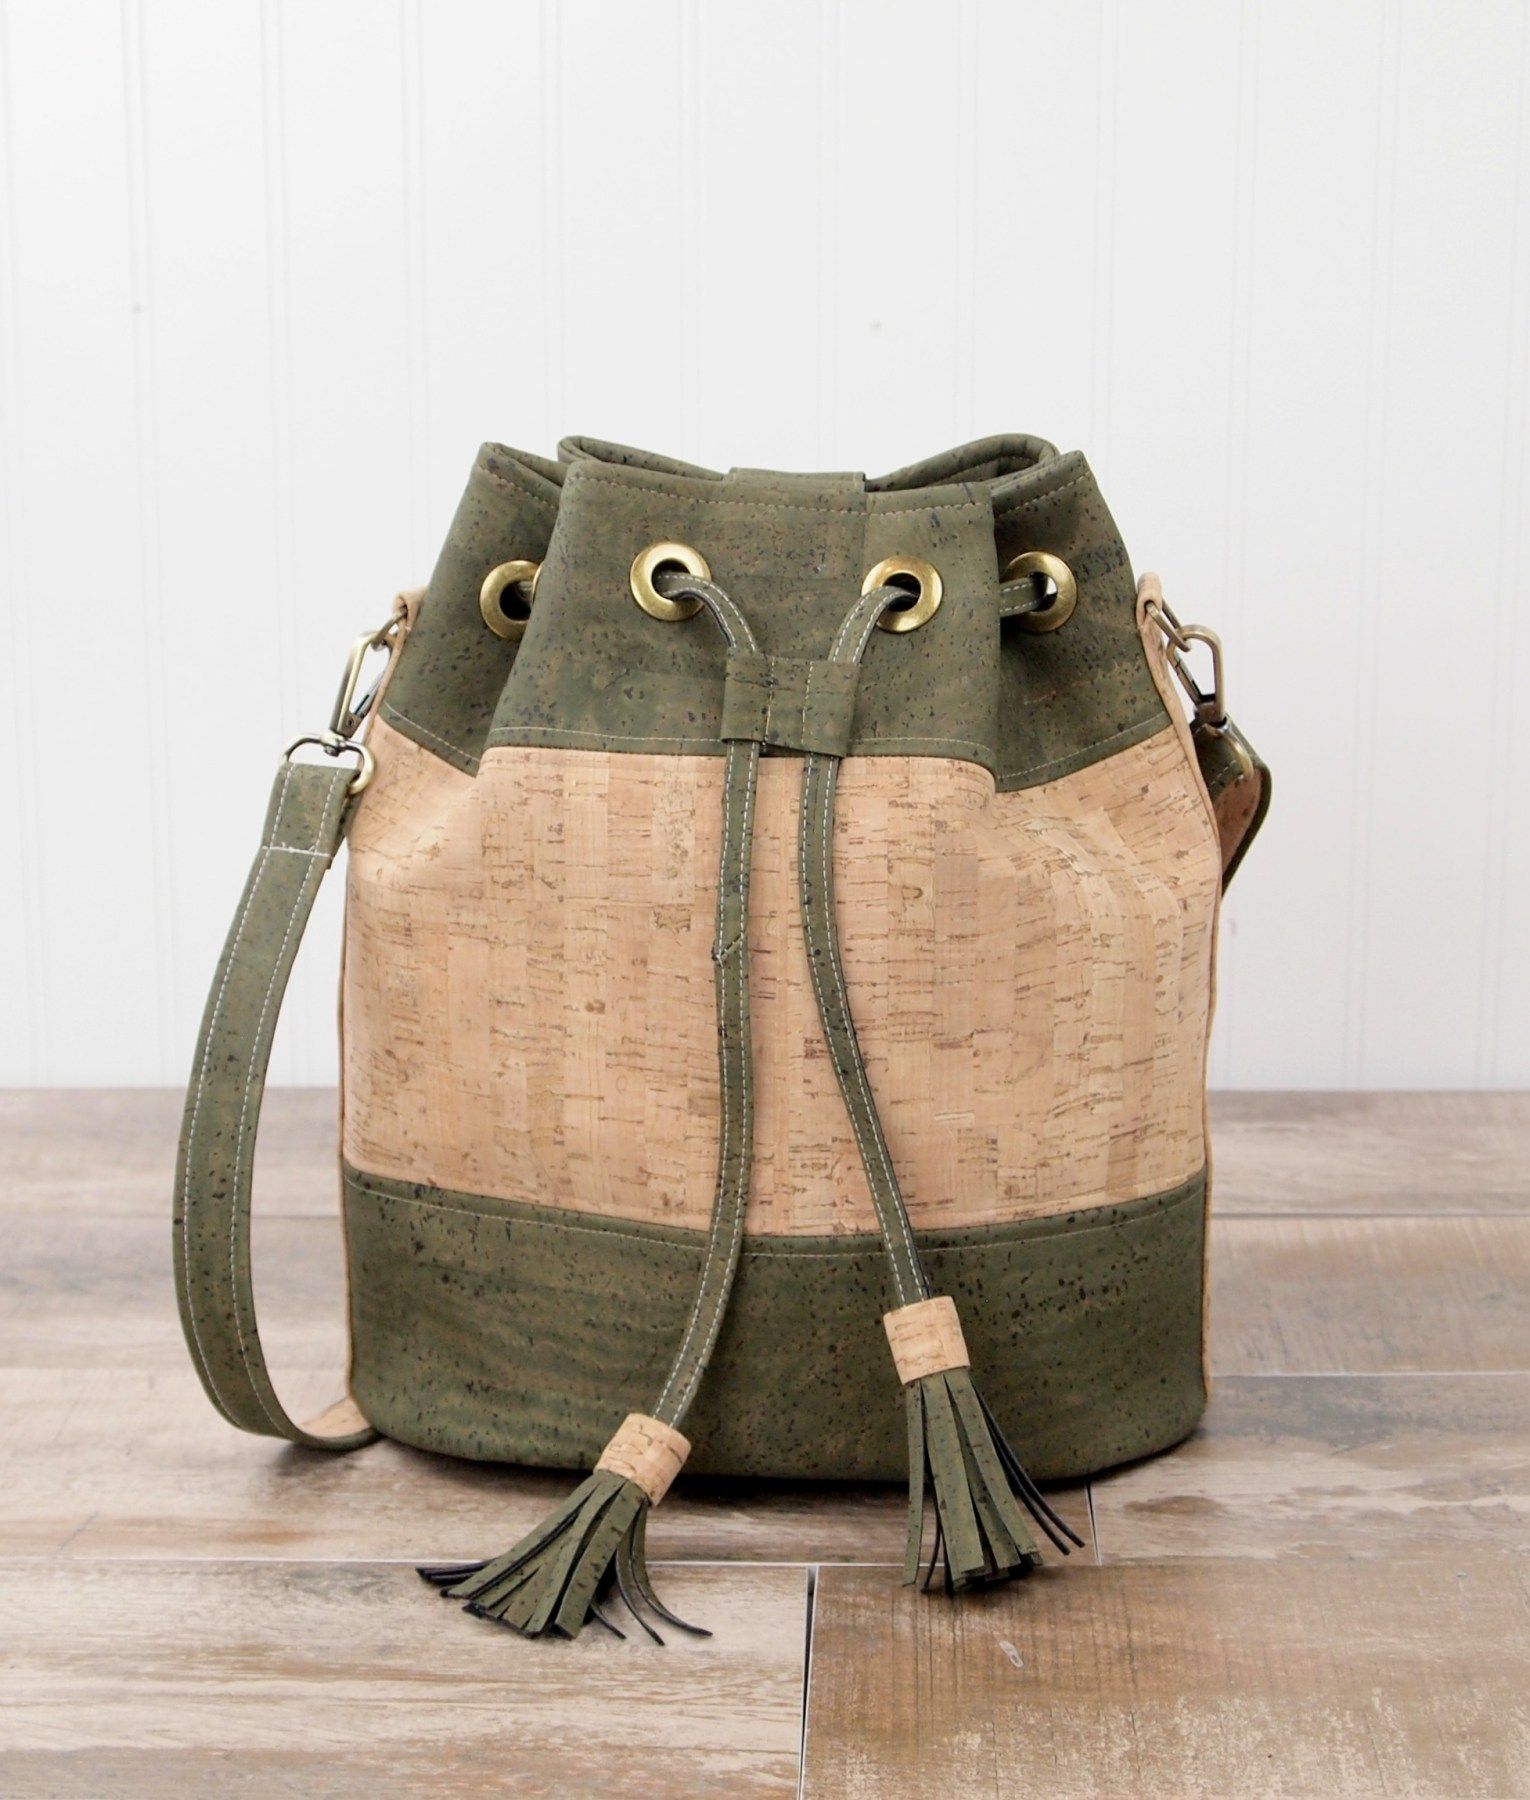 Magnolia Bucket Bag Cork Fabric Pattern - Introduction to Sewing with Cork  Fabric. Learn how to sew with cork as you make this bag. 9722be90b2ca4